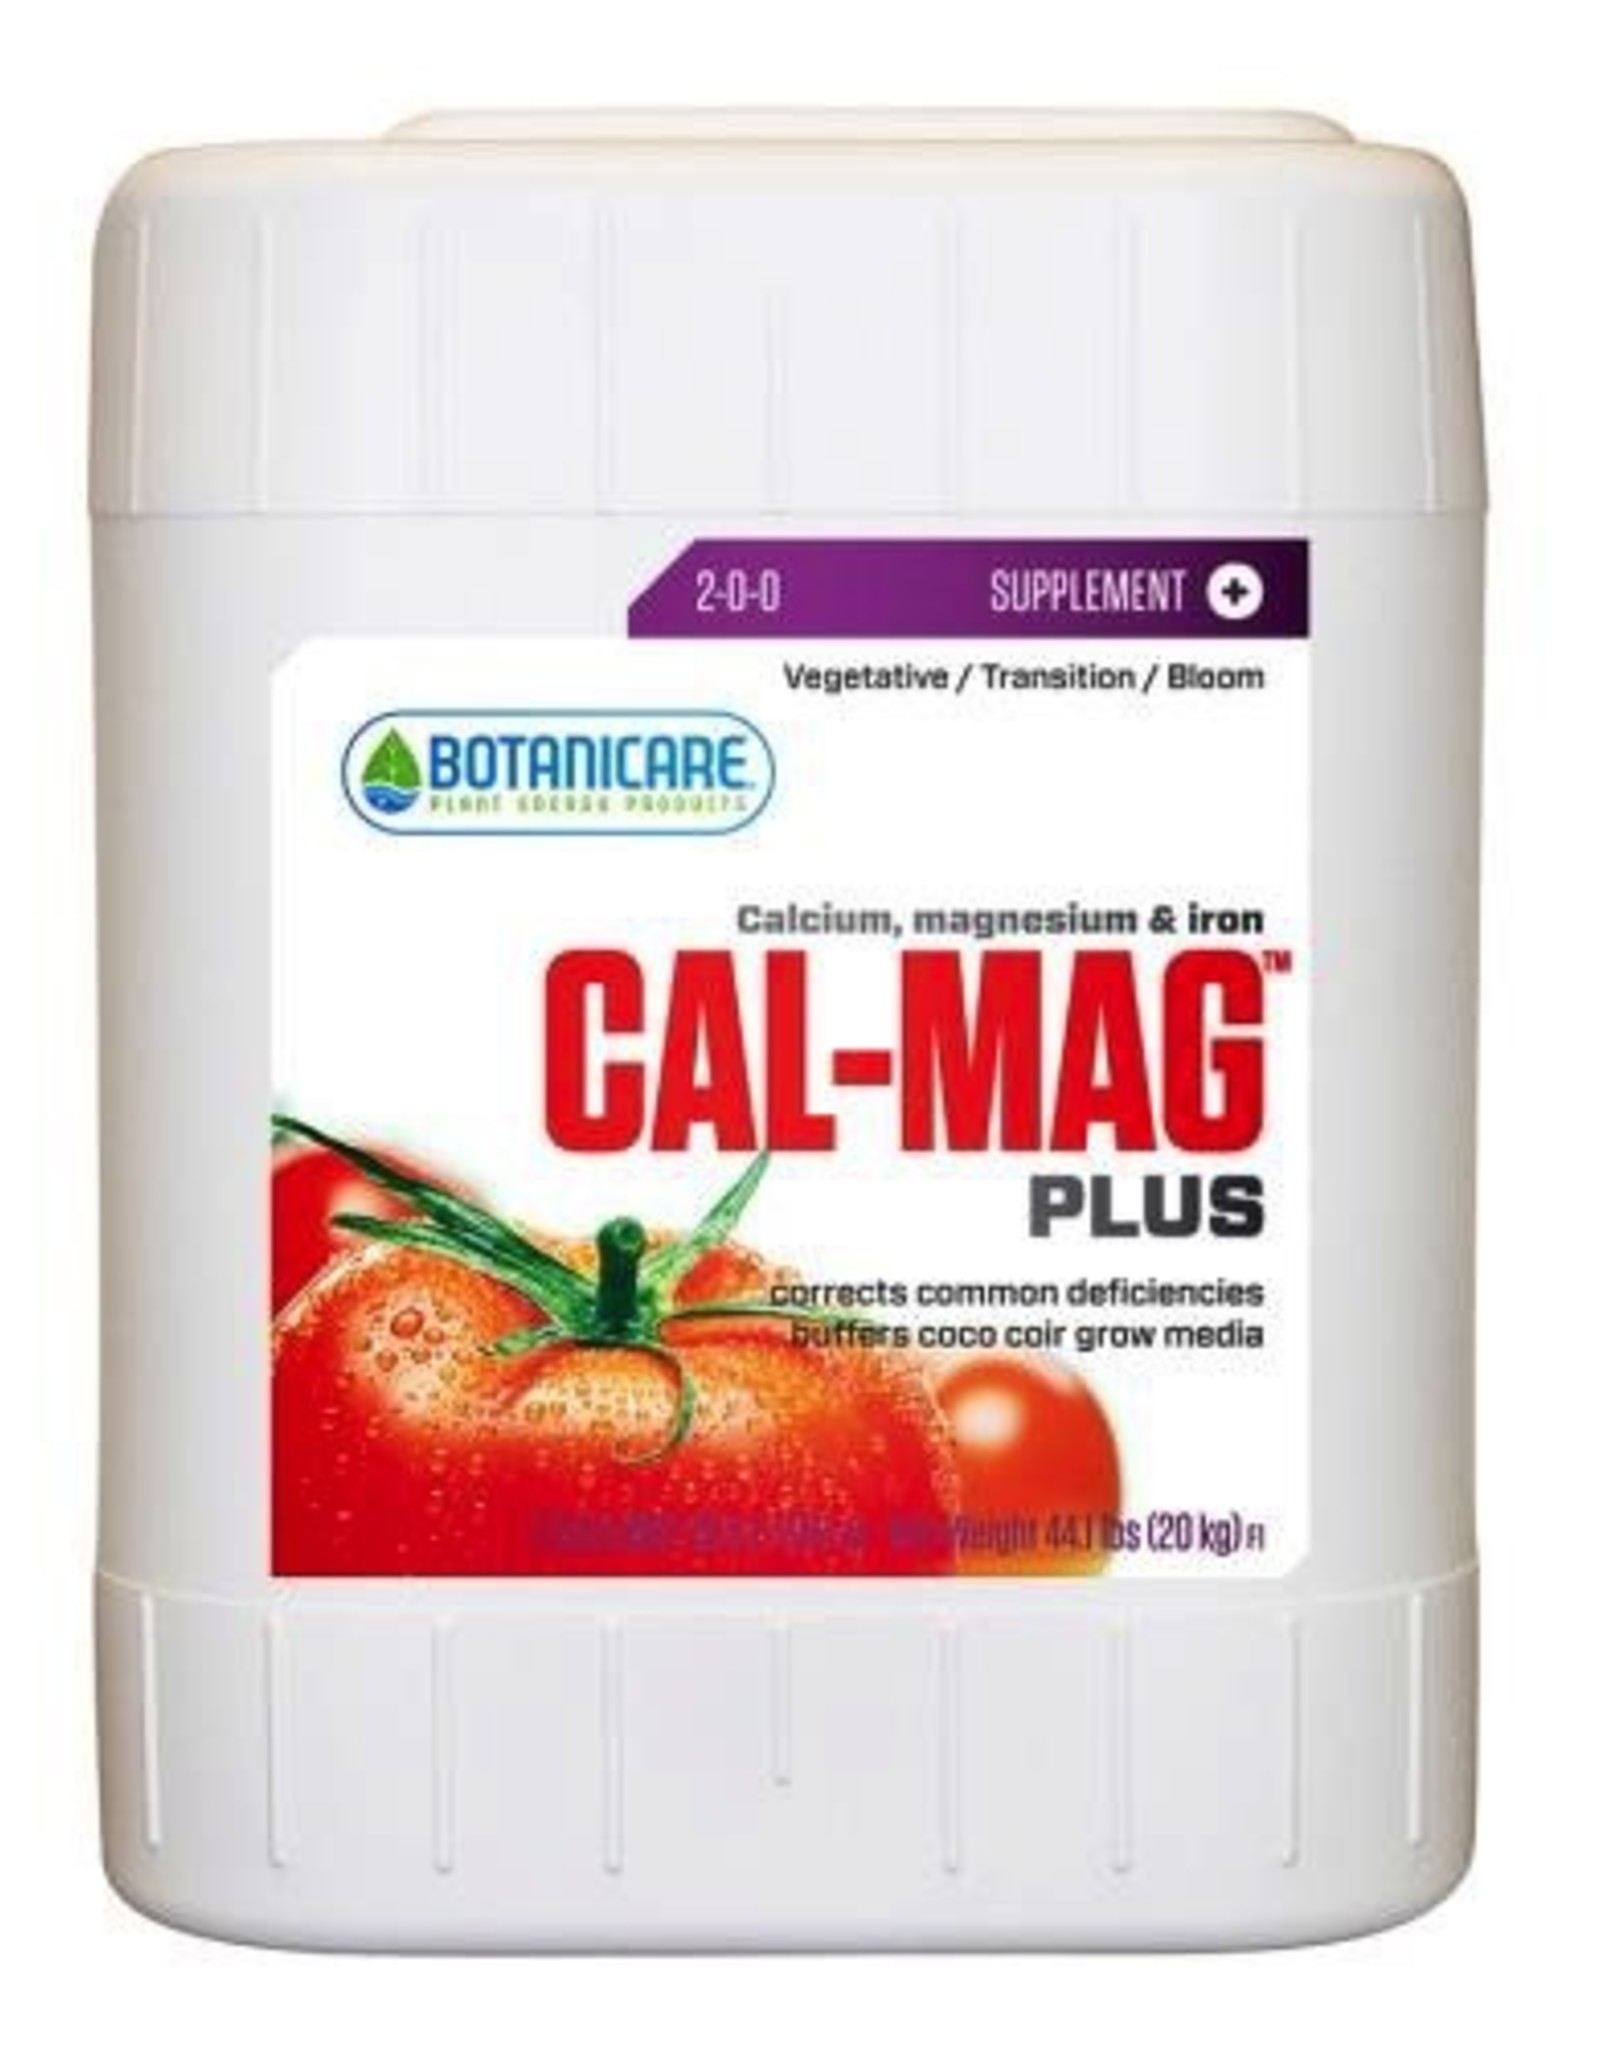 BOTANICARE Cal-Mag Plus™ is a bio-catalyst for plants. A beneficial plant nutrient correcting the inherent problem of calcium, magnesium and iron mineral deficiencies found in most soil fertilizers and some hydroponic nutrient liquid concentrated formulas.